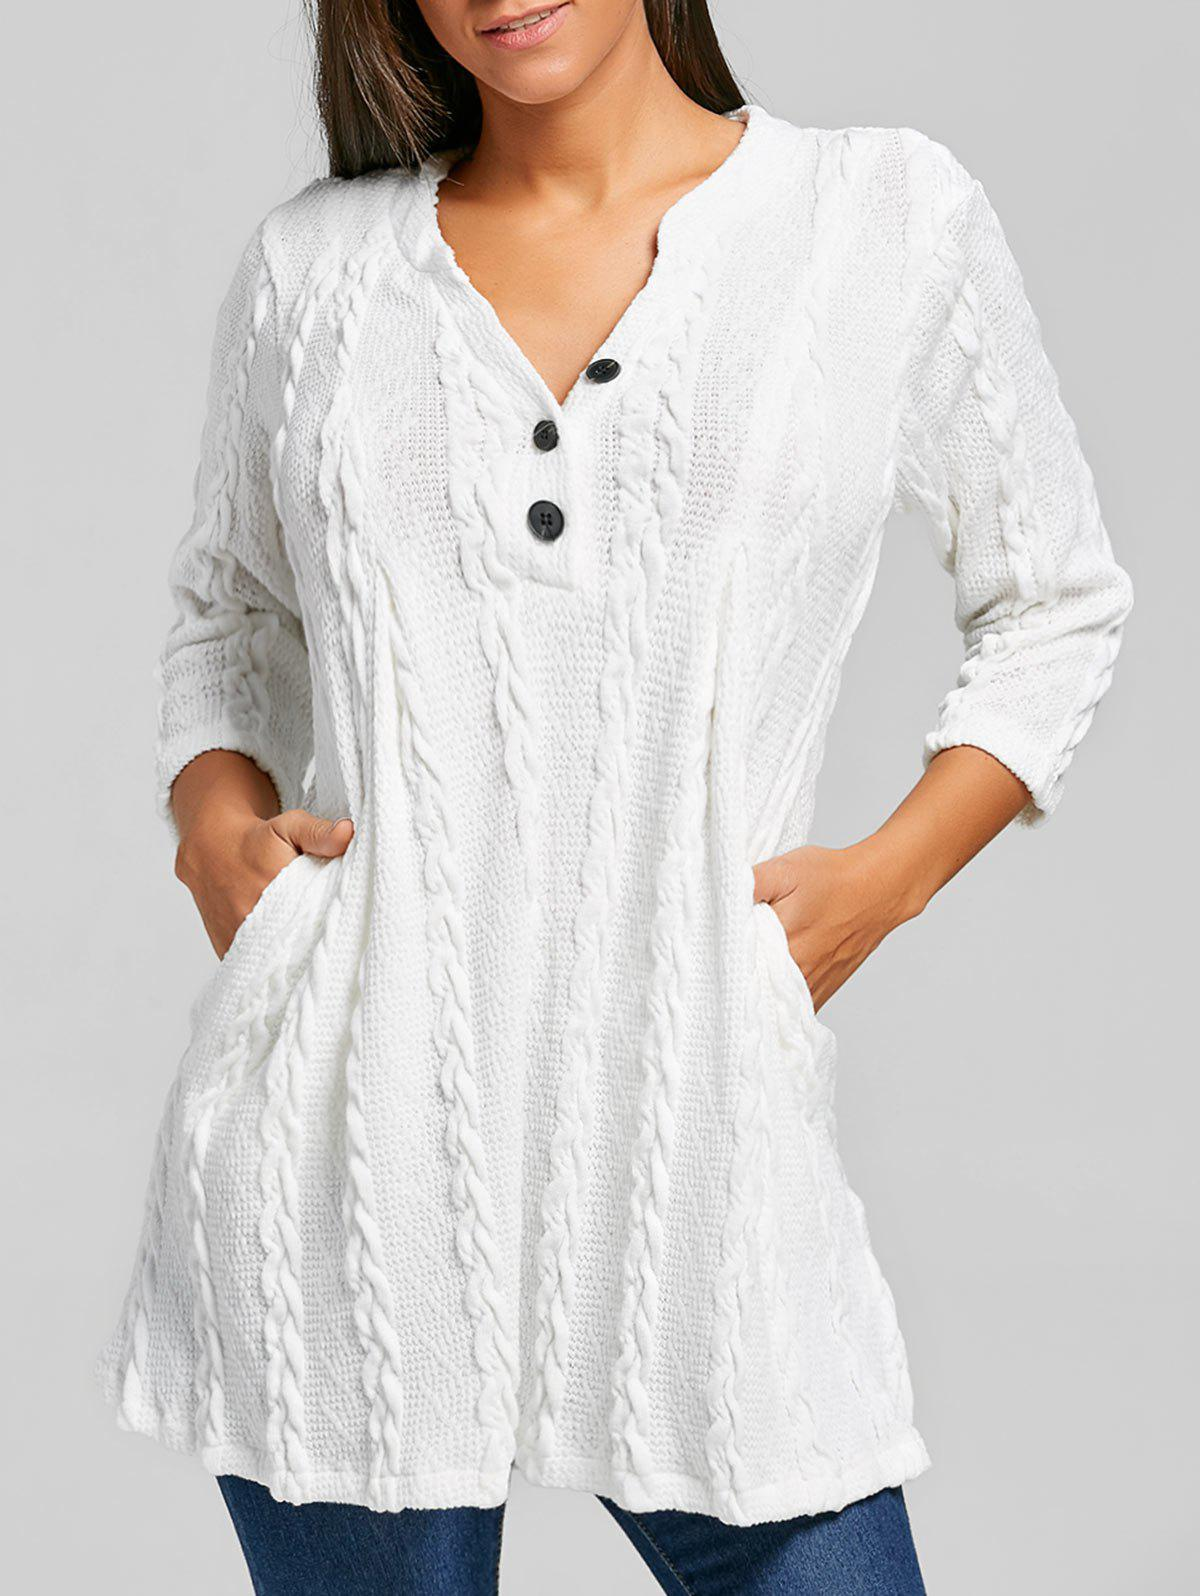 Cable Knitted V Neck Tunic SweaterWOMEN<br><br>Size: L; Color: WHITE; Type: Pullovers; Material: Polyester,Spandex; Sleeve Length: Three Quarter; Collar: V-Neck; Style: Fashion; Pattern Type: Solid; Season: Fall,Spring; Weight: 0.6300kg; Package Contents: 1 x Sweater;